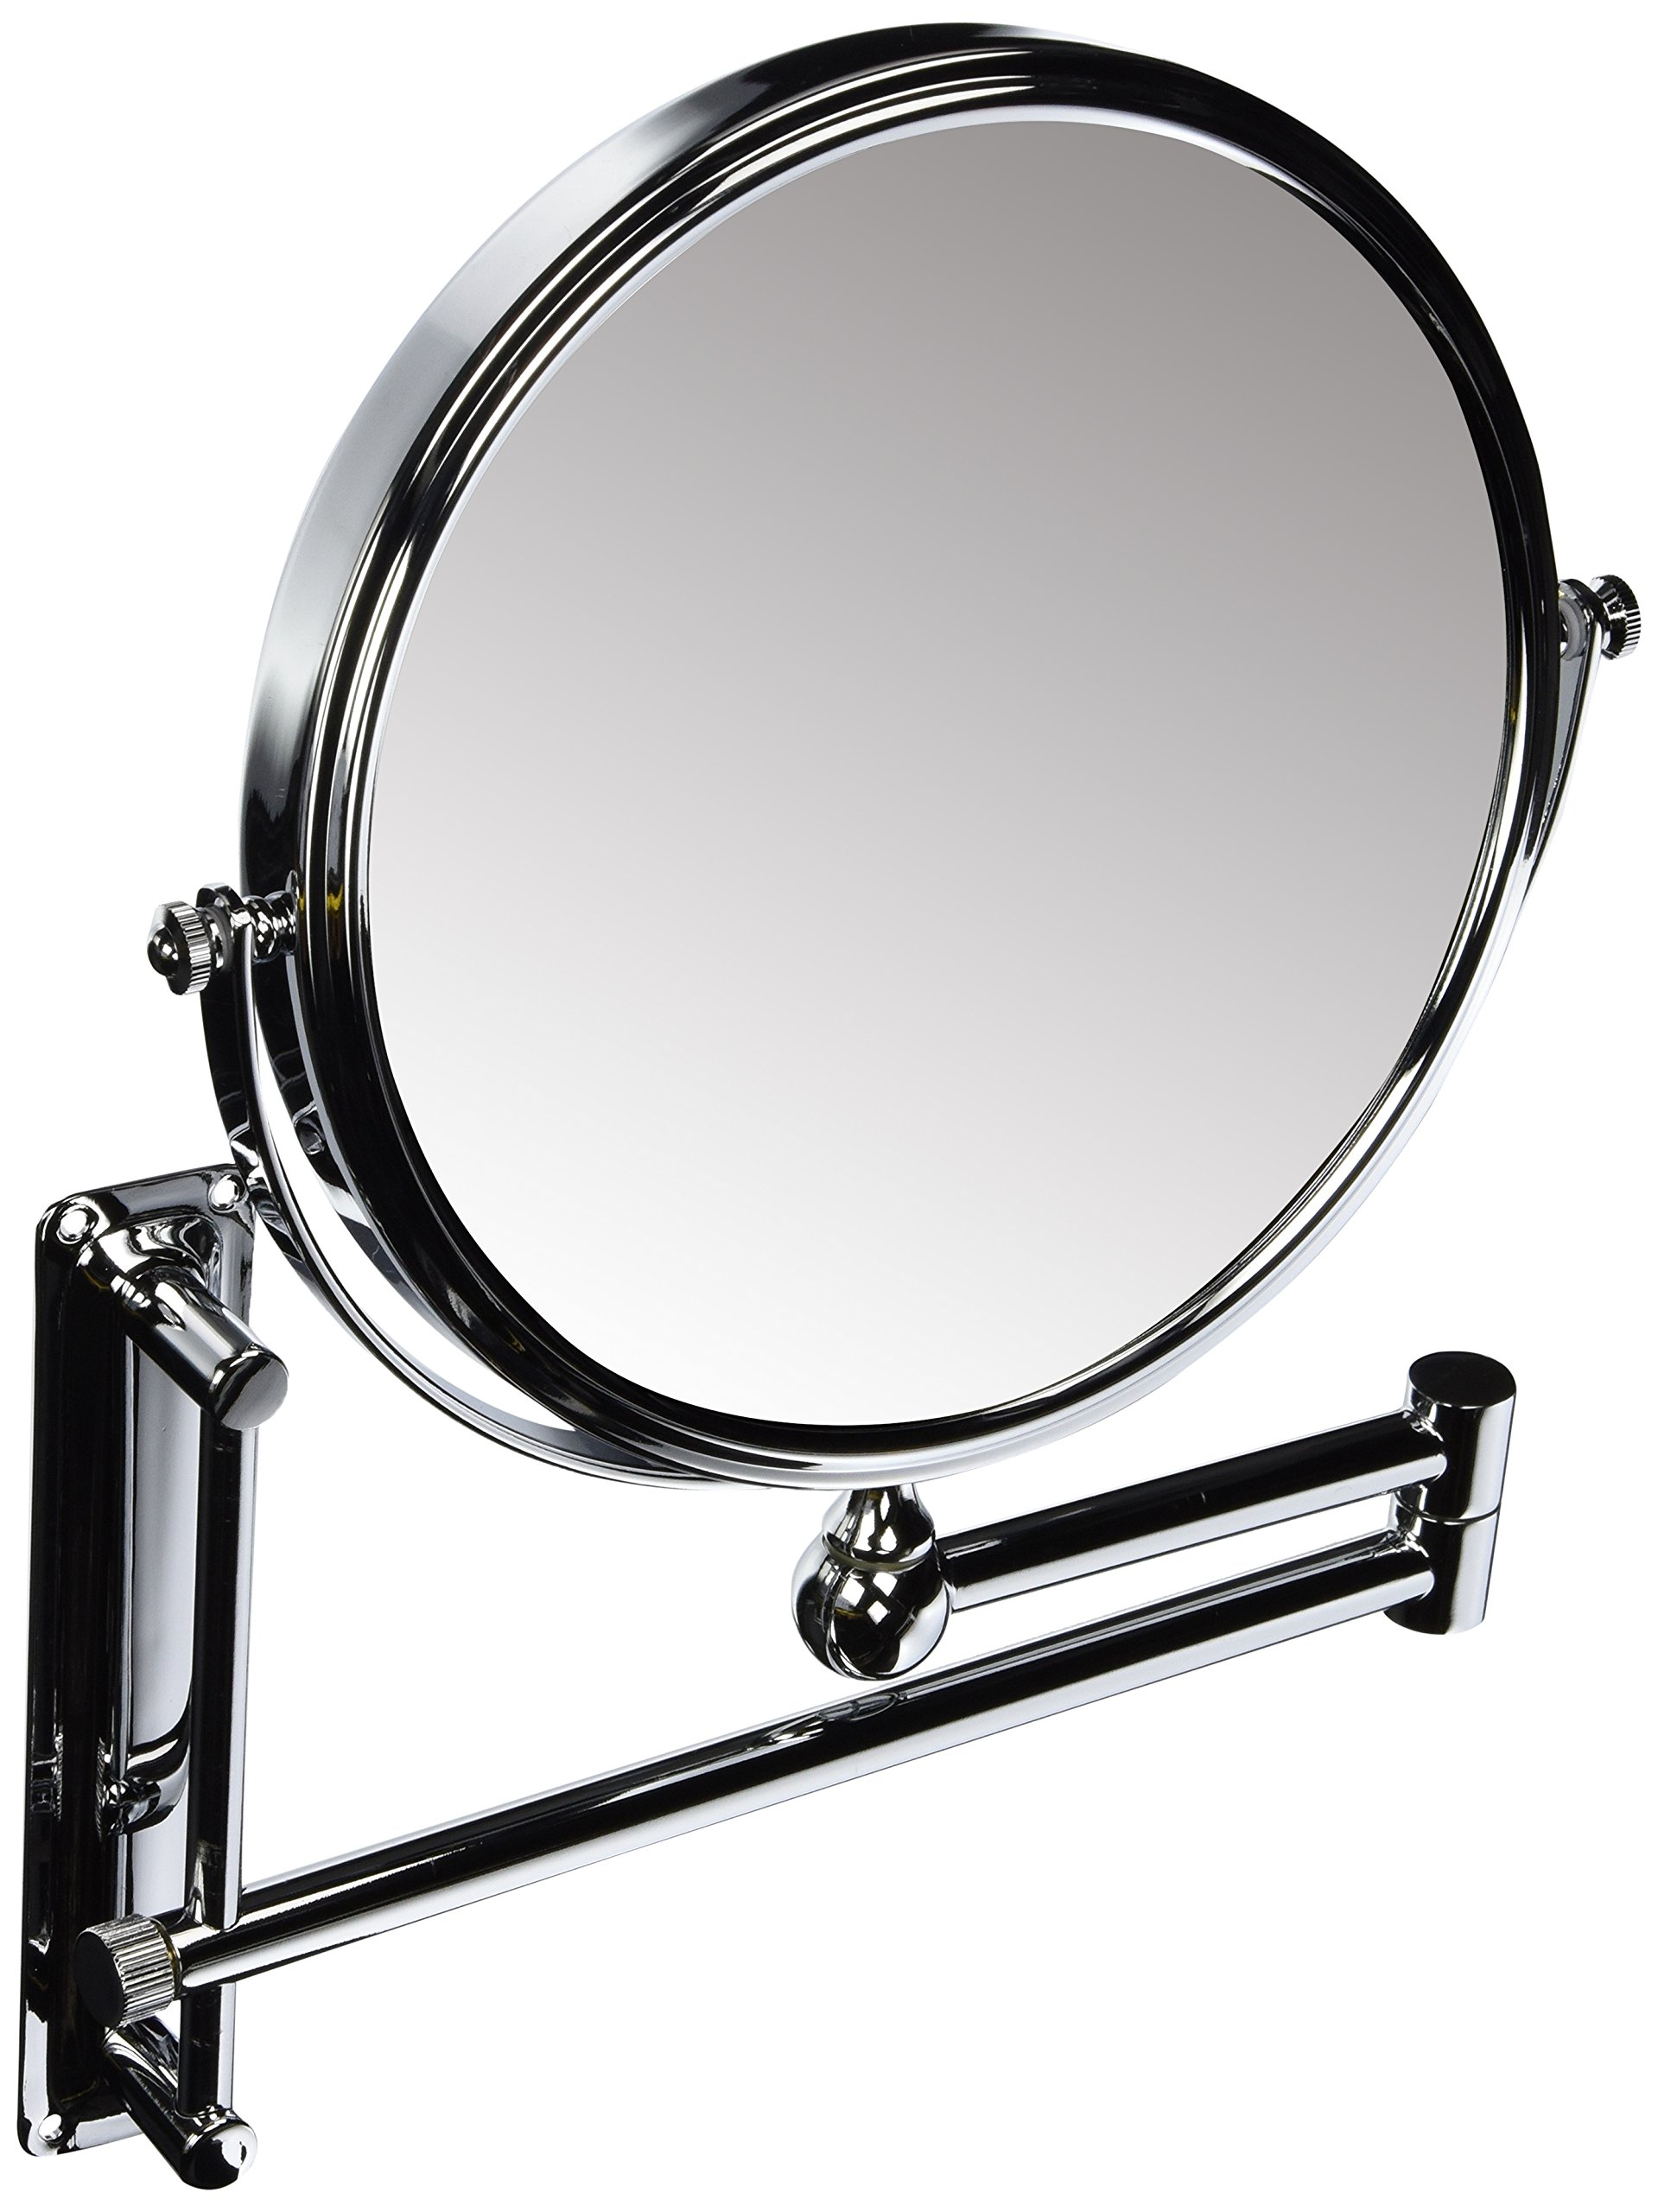 DANIELLE ADJUSTABLE HEIGHT, 2-SIDED WALL MOUNT EXTENDABLE MAKEUP MIRROR, 10X MAGNIFICATION, CHROME by Danielle